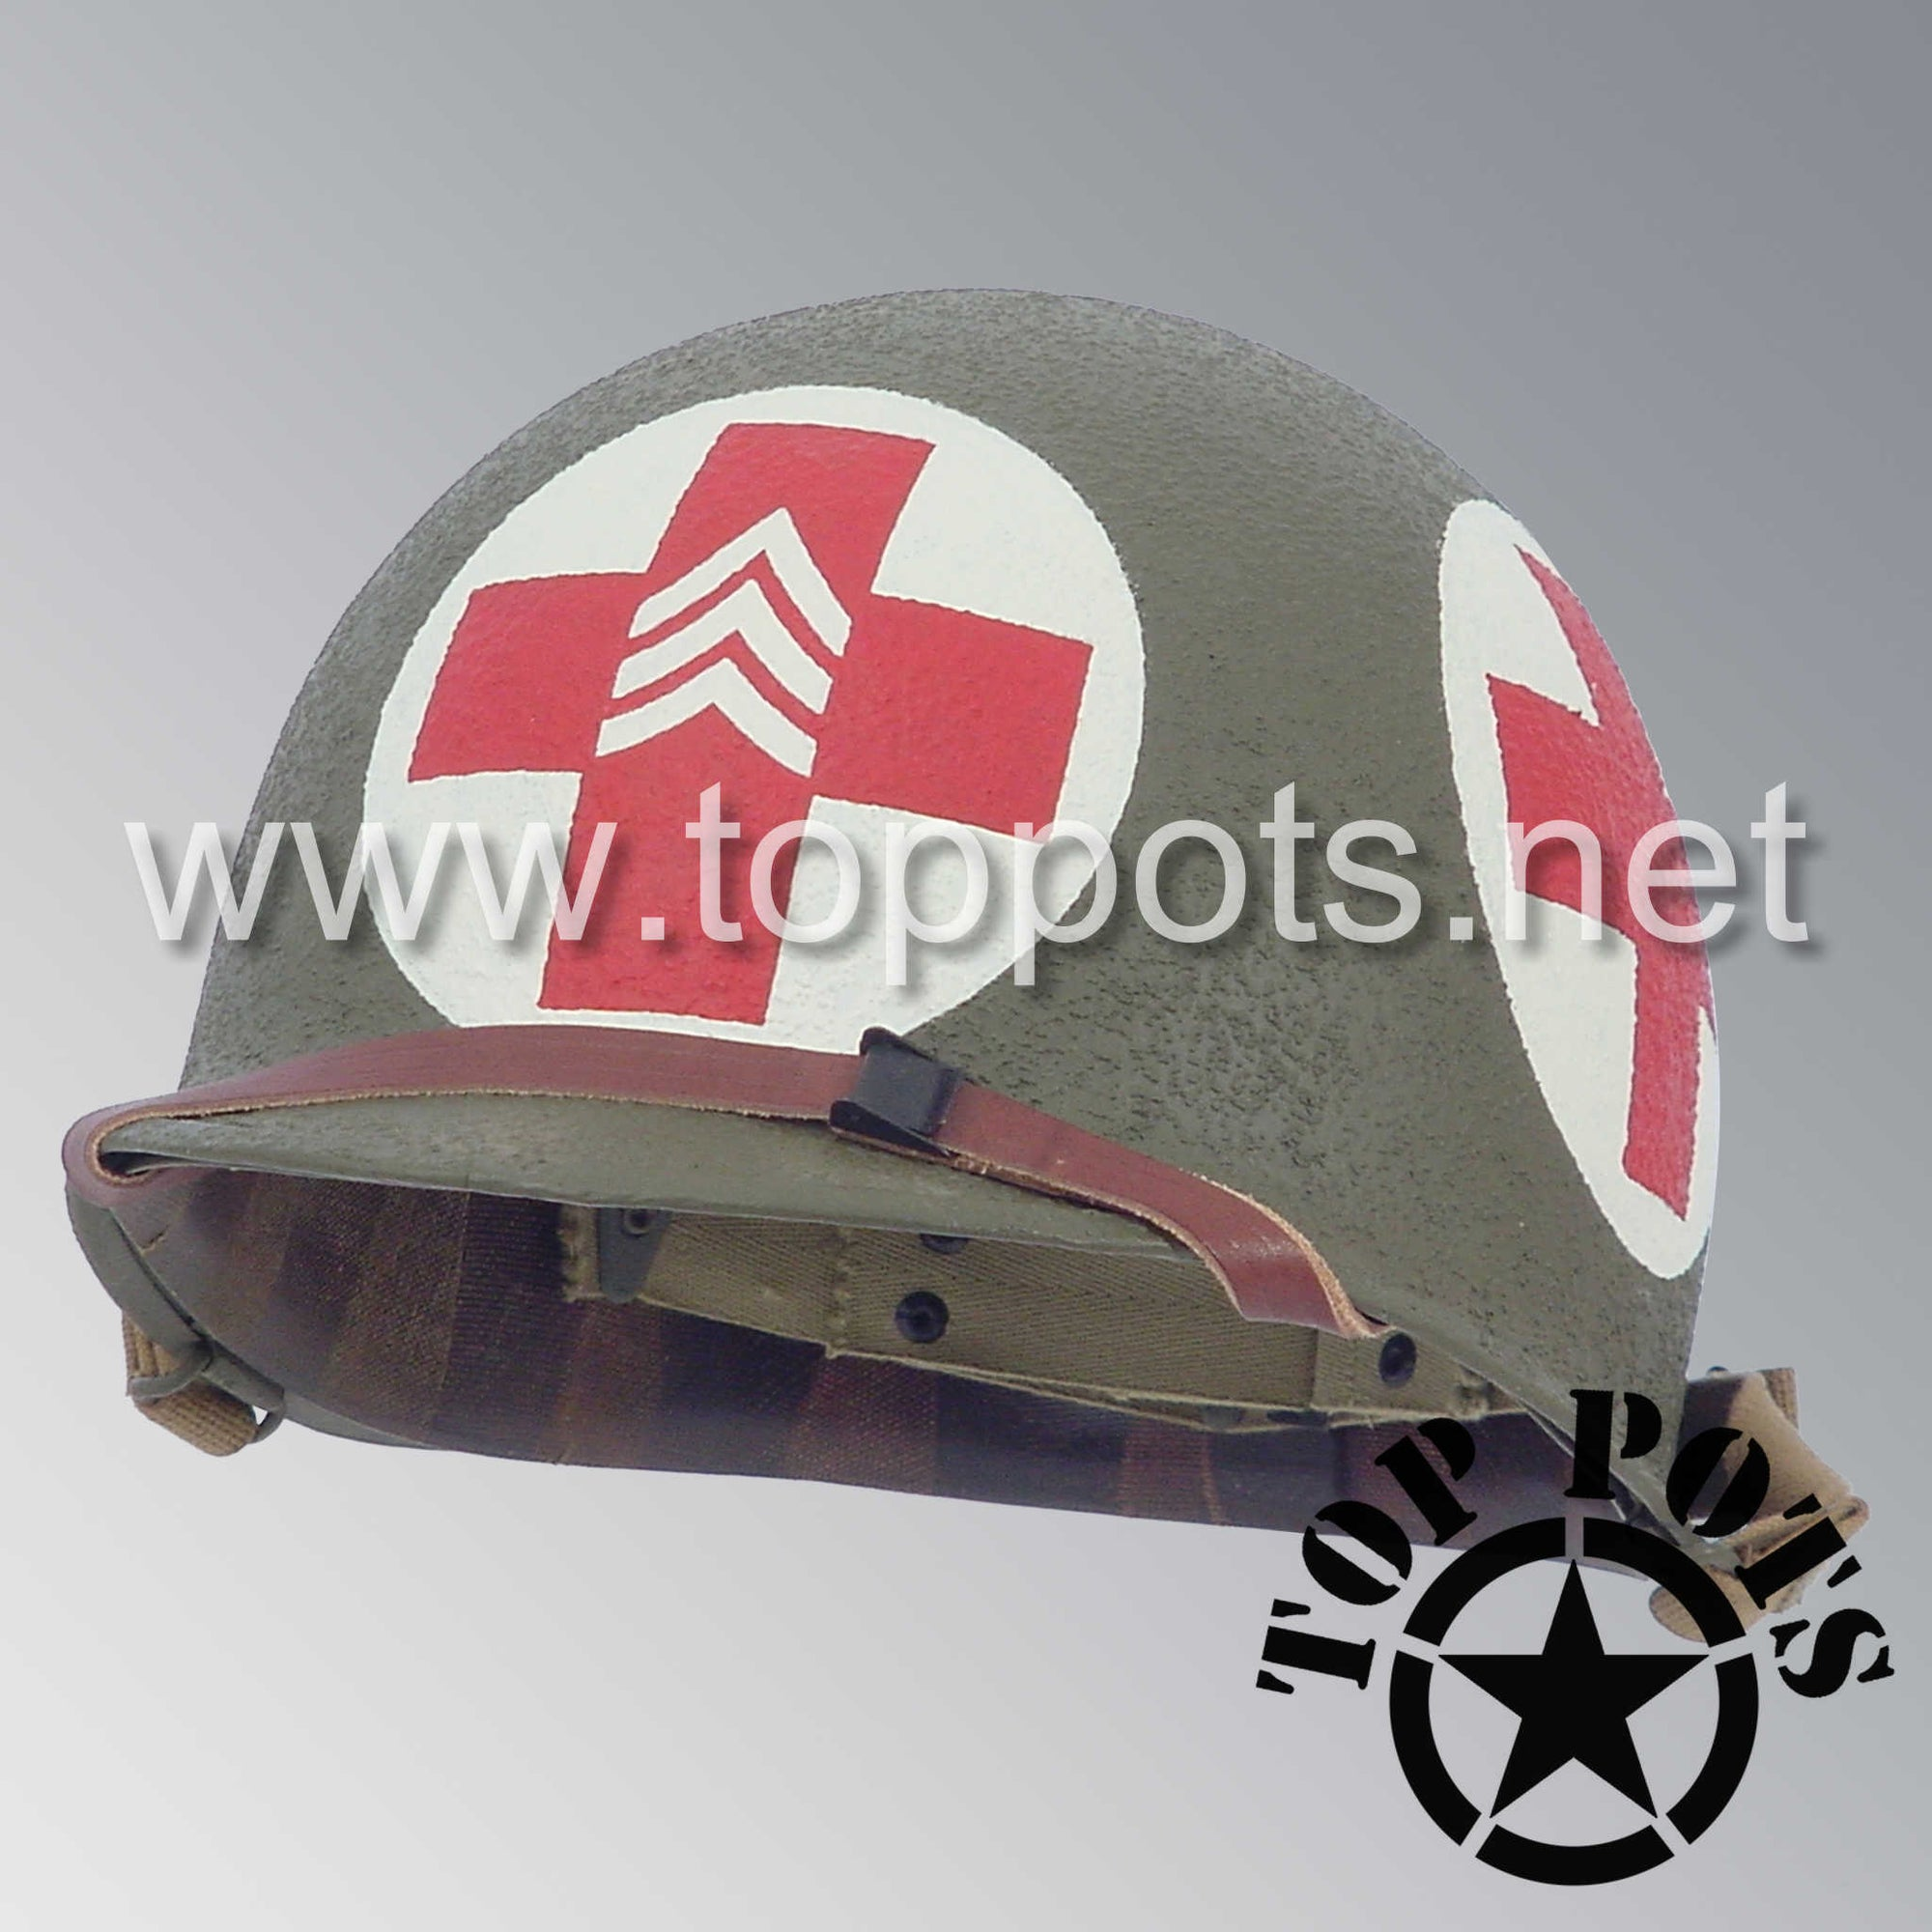 Image 1 of WWII US Army Restored Original M1 Infantry Helmet Swivel Bale Shell and Liner with Four Panel Medic NCO Emblem